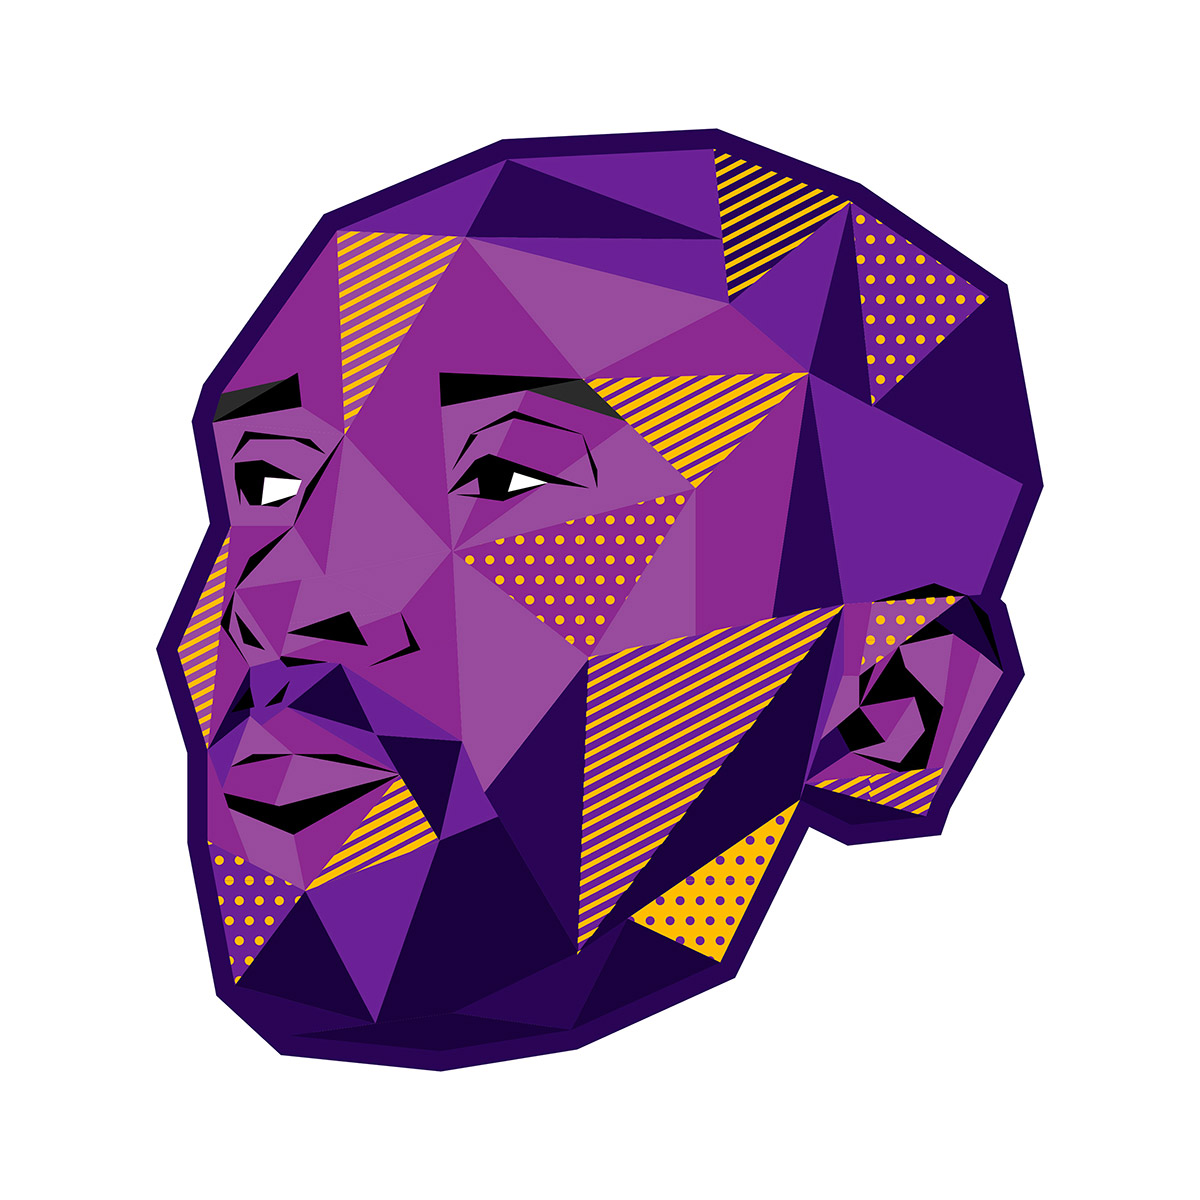 Pop Art NBA Players by Nick Bascus (10 pics)